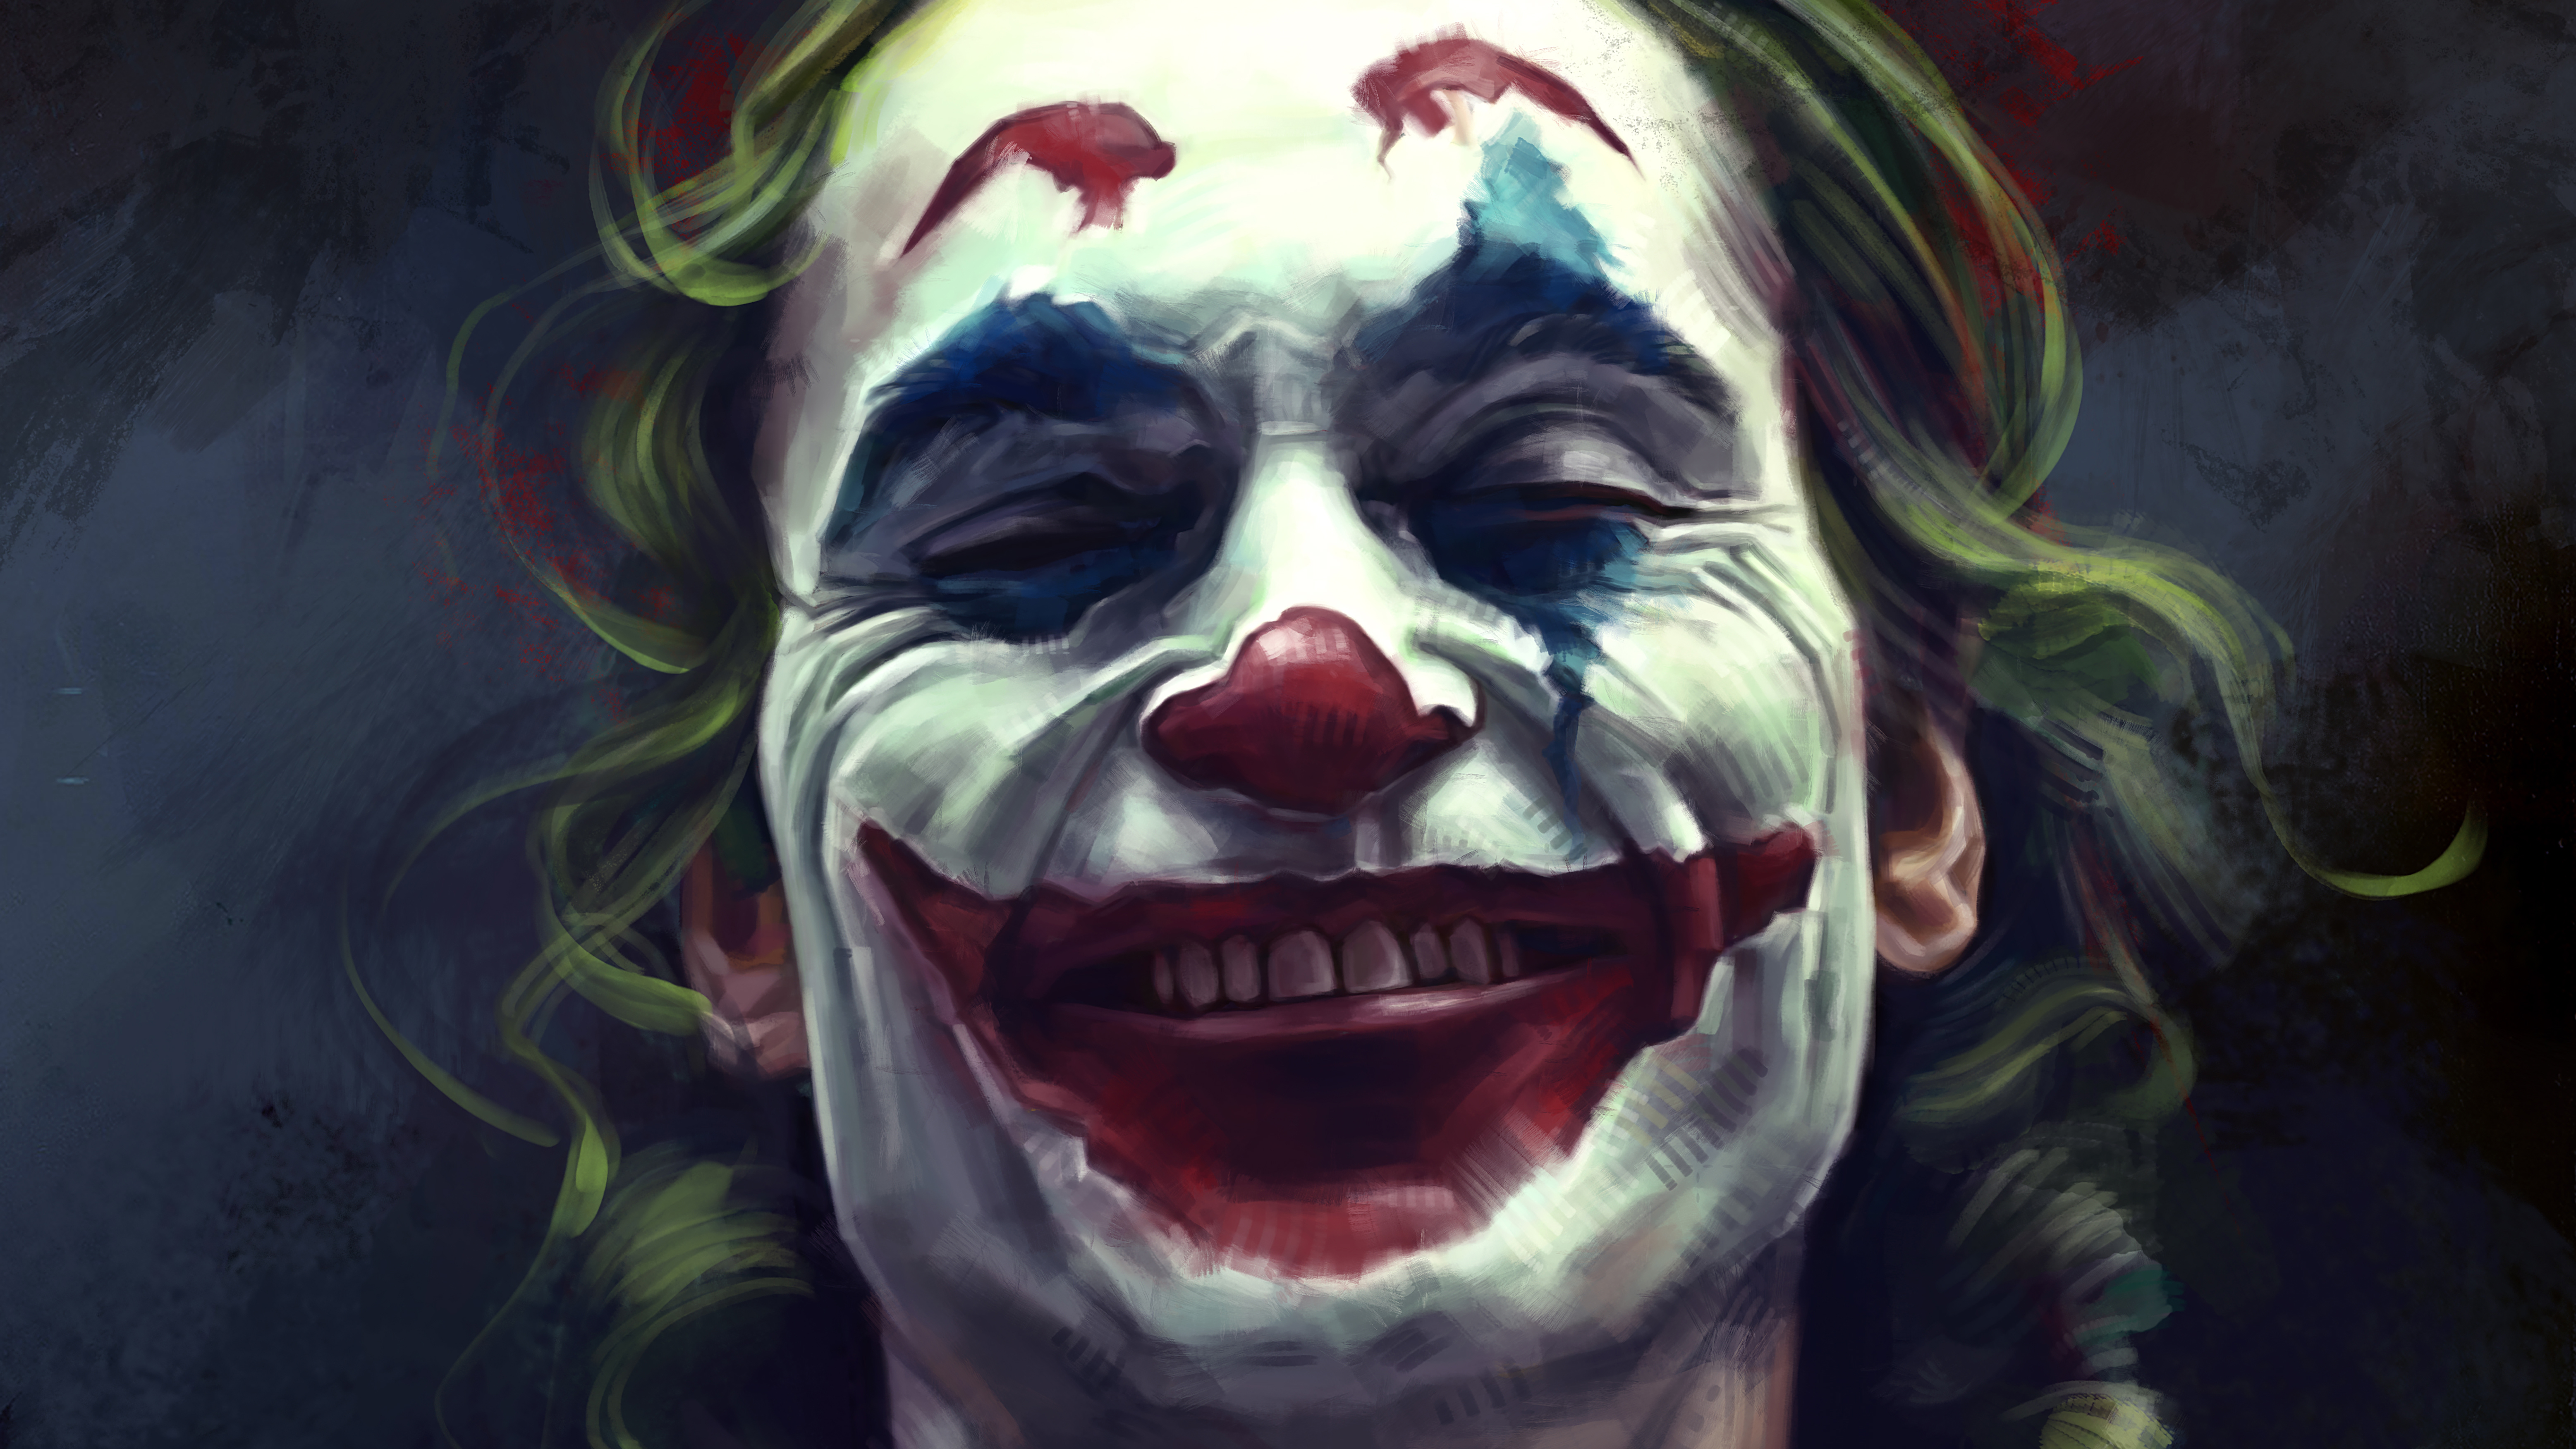 1366x768 Joker Smile For Me 5k 1366x768 Resolution Hd 4k Wallpapers Images Backgrounds Photos And Pictures